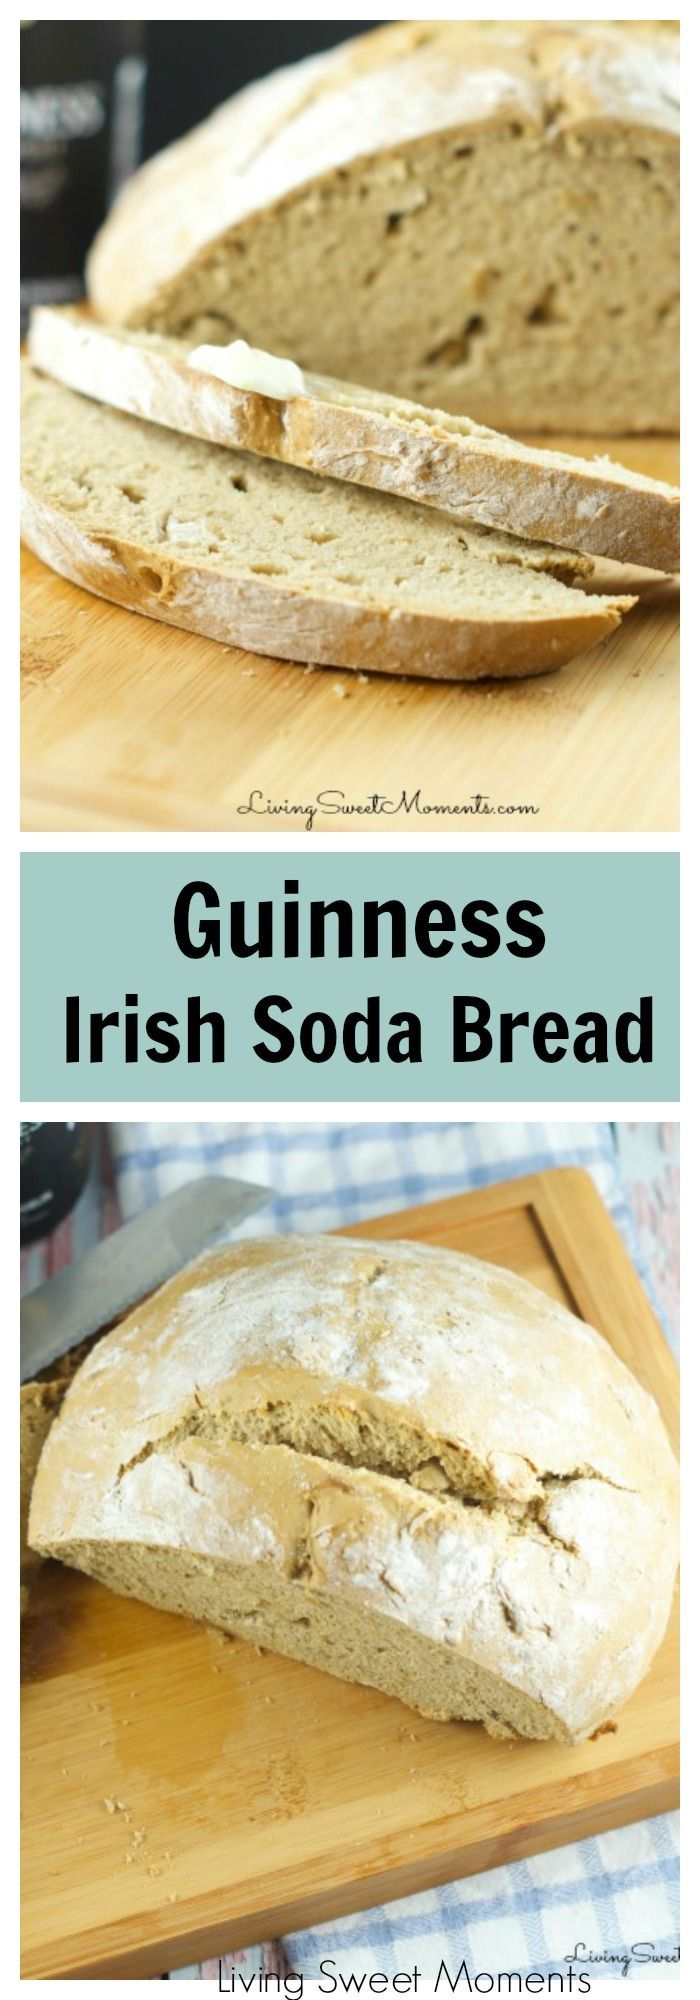 Guinness Irish Soda Bread - Delicious and easy to make homemade beer bread. Enjoy a deep flavor with without kneading. This bread requires no yeast at all. More St. Patrick's Day Recipes at livingsweetmoments.com via @Livingsmoments